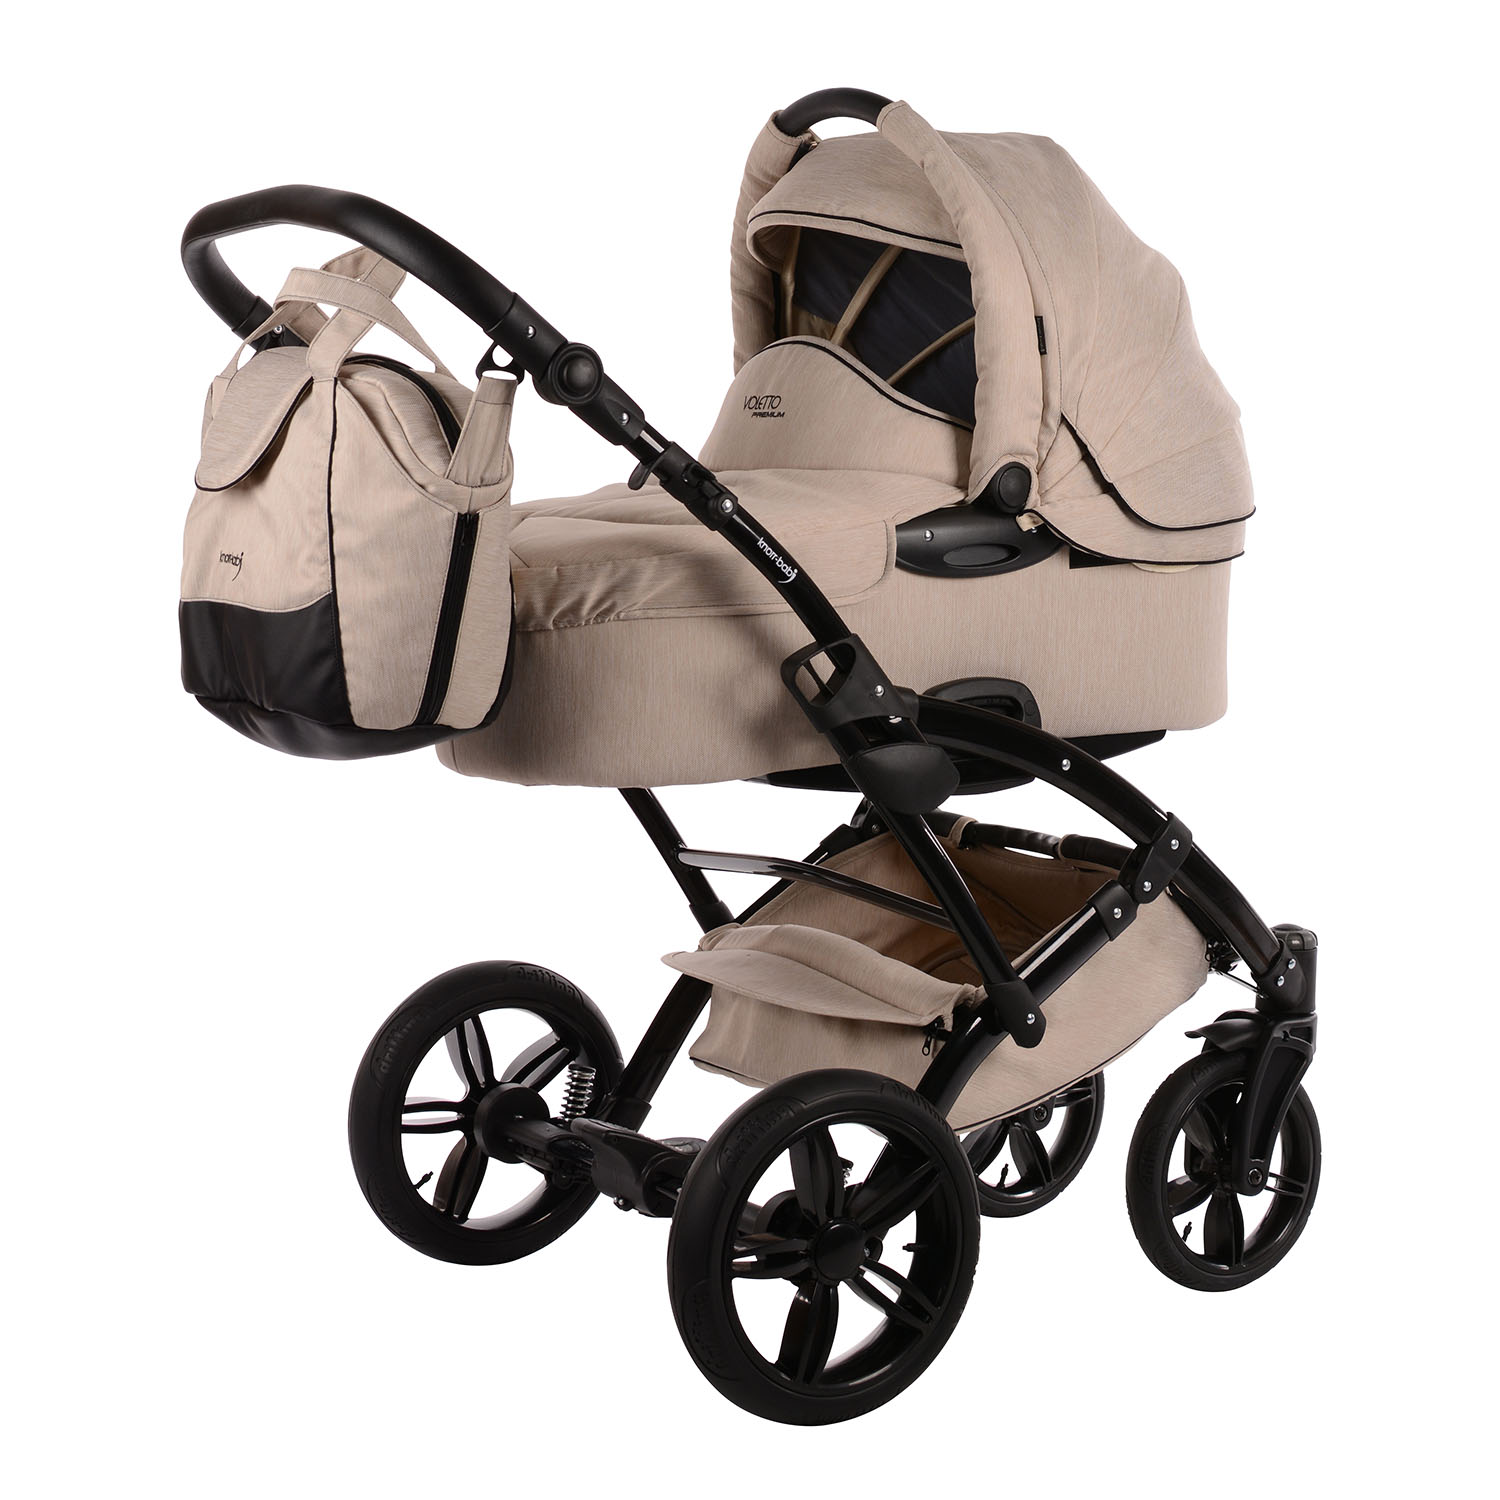 knorr baby gmbh kombi kinderwagen voletto premium beige online kaufen. Black Bedroom Furniture Sets. Home Design Ideas